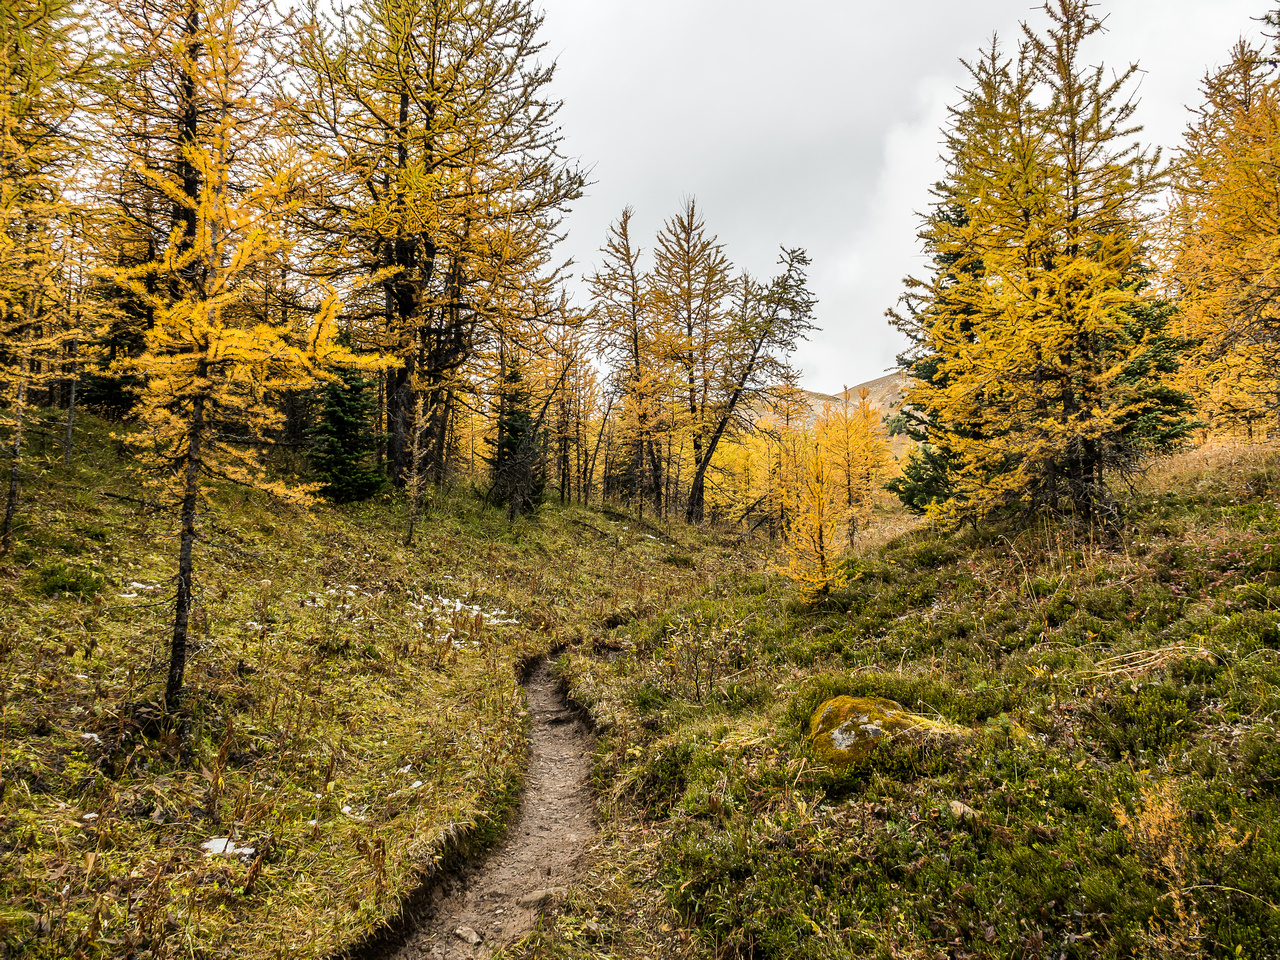 An intense larch forest as I work my way around the dried up tarn and towards the south end of Fatigue Mountain and an outlier of Golden Mountain.